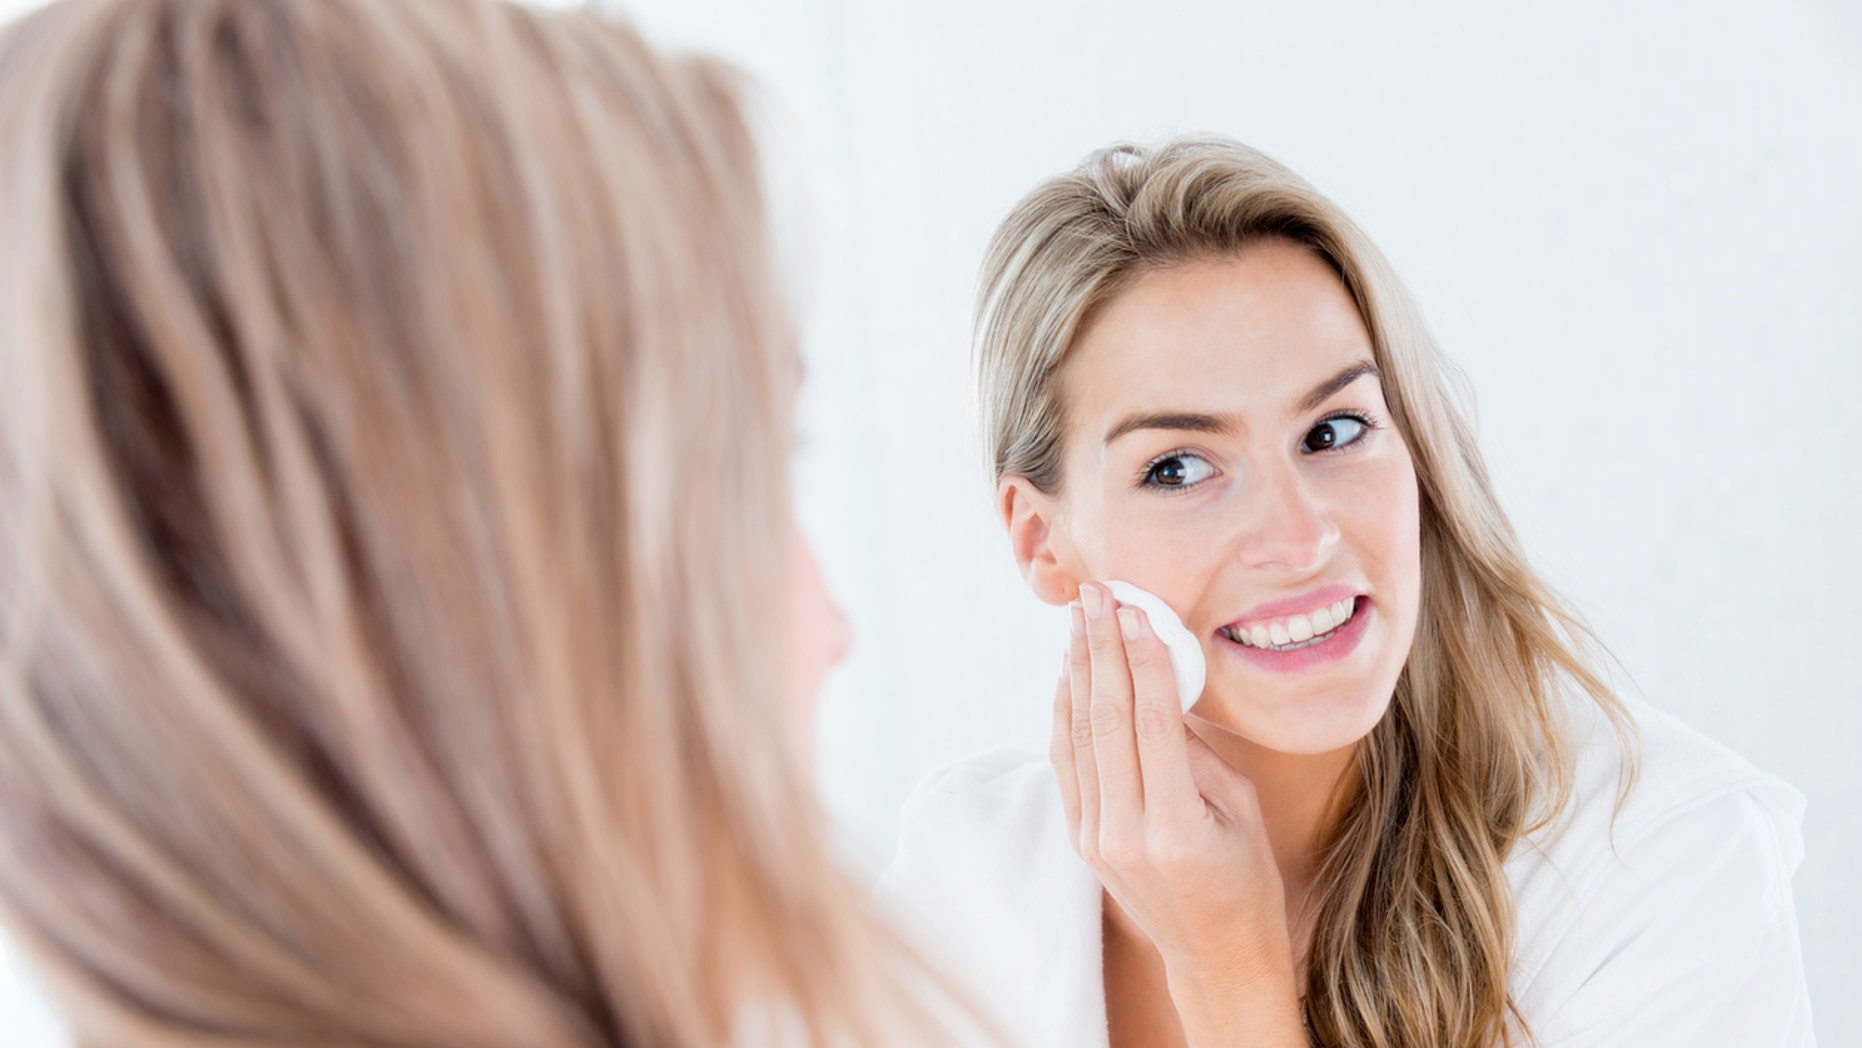 The 6 best ways to get rid of age spots | Fox News